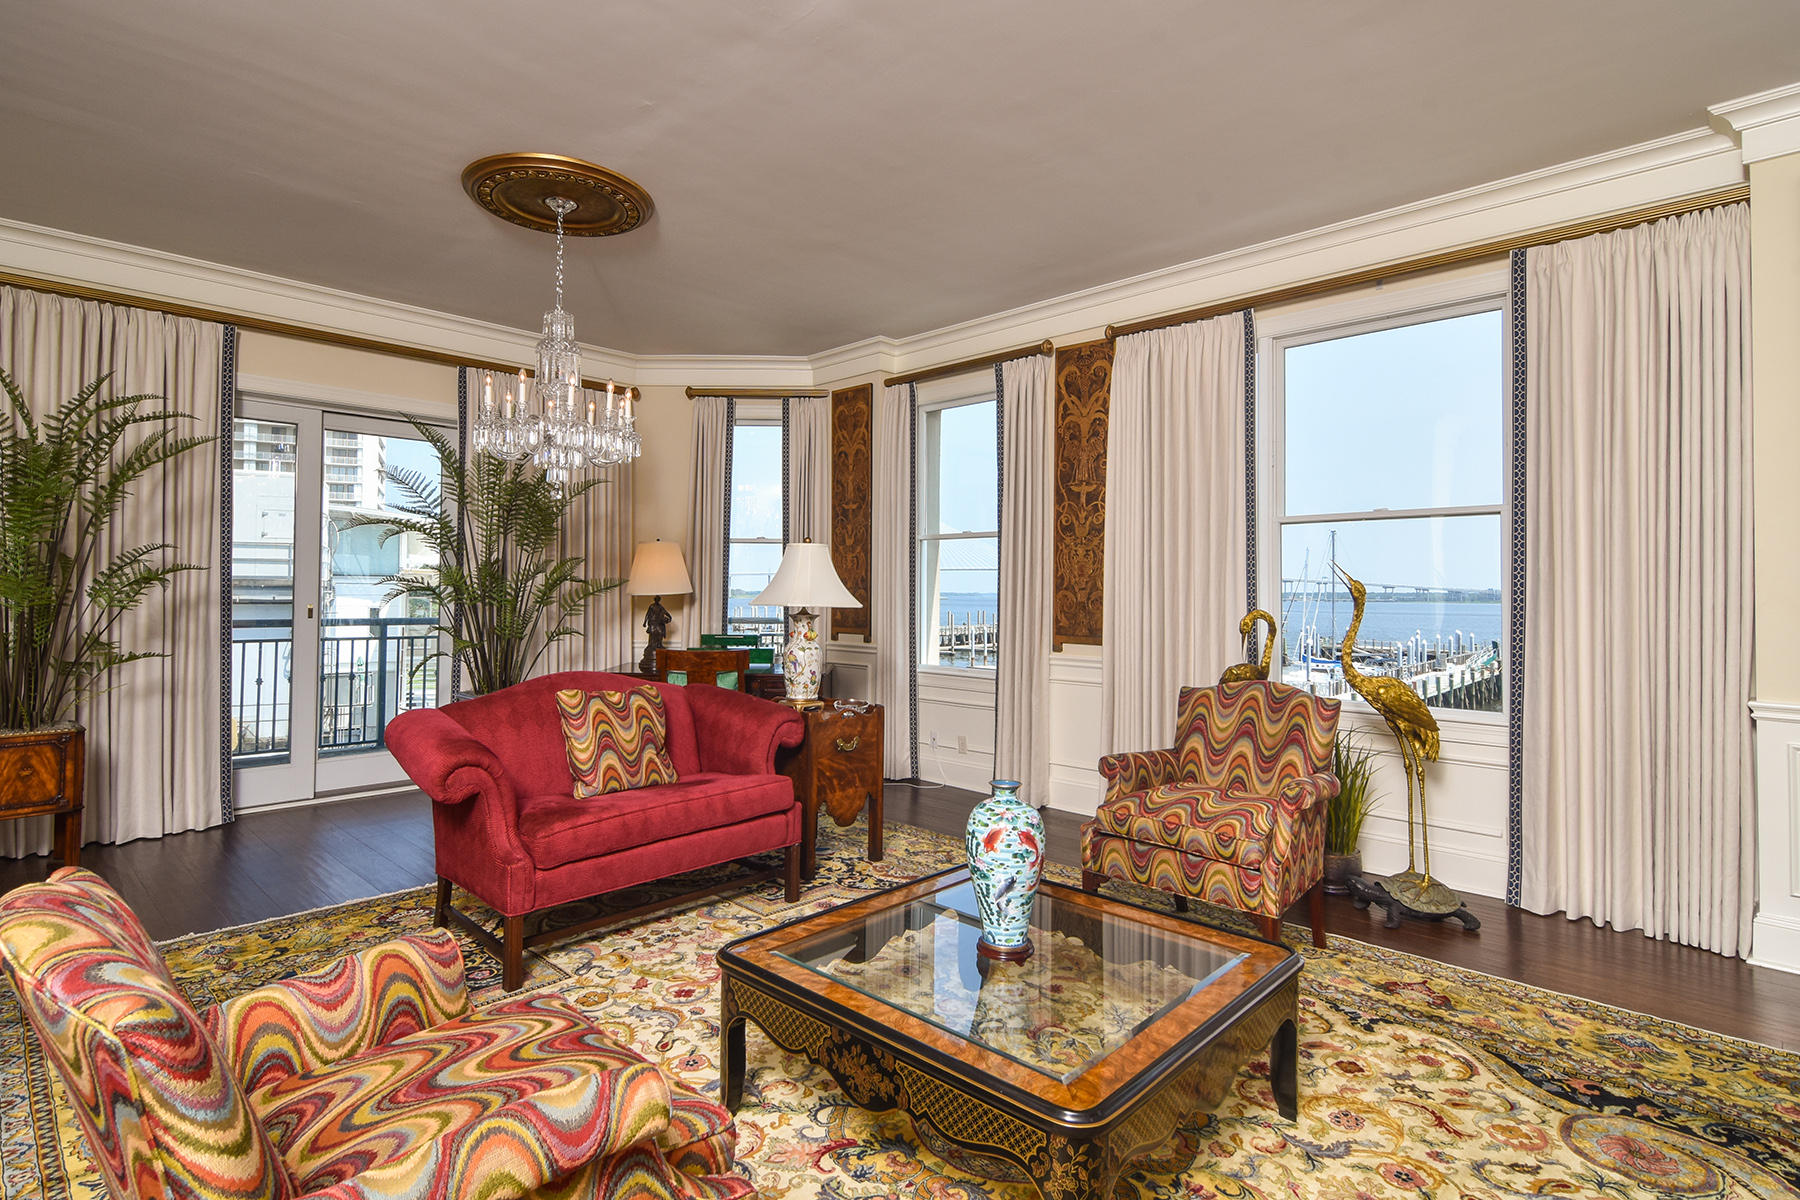 Laurens Place Homes For Sale - 2 Wharfside, Charleston, SC - 0